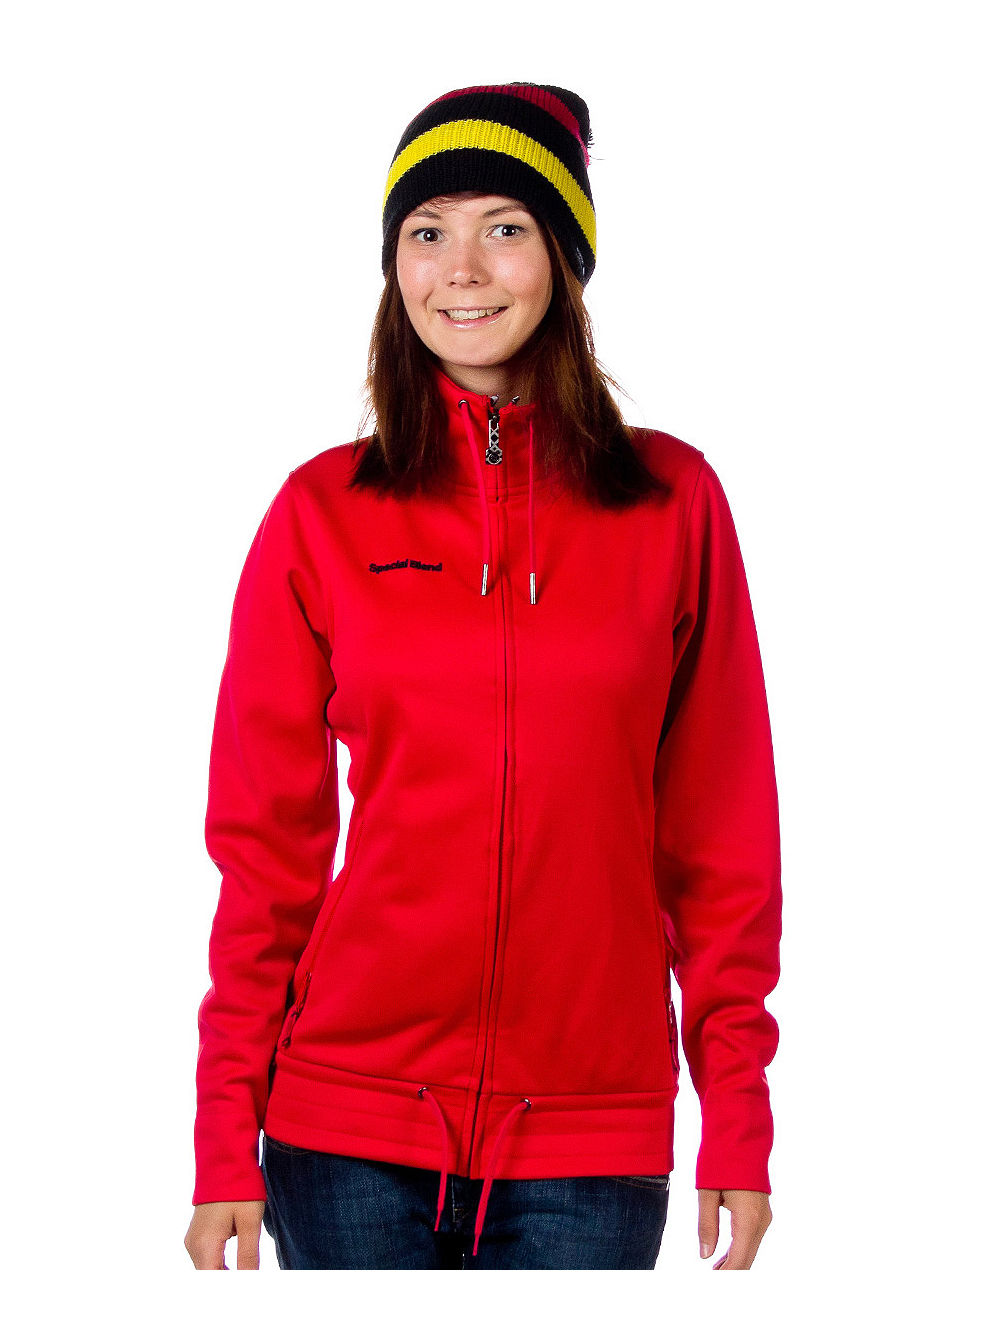 Daybreak Fleece Jacket Women